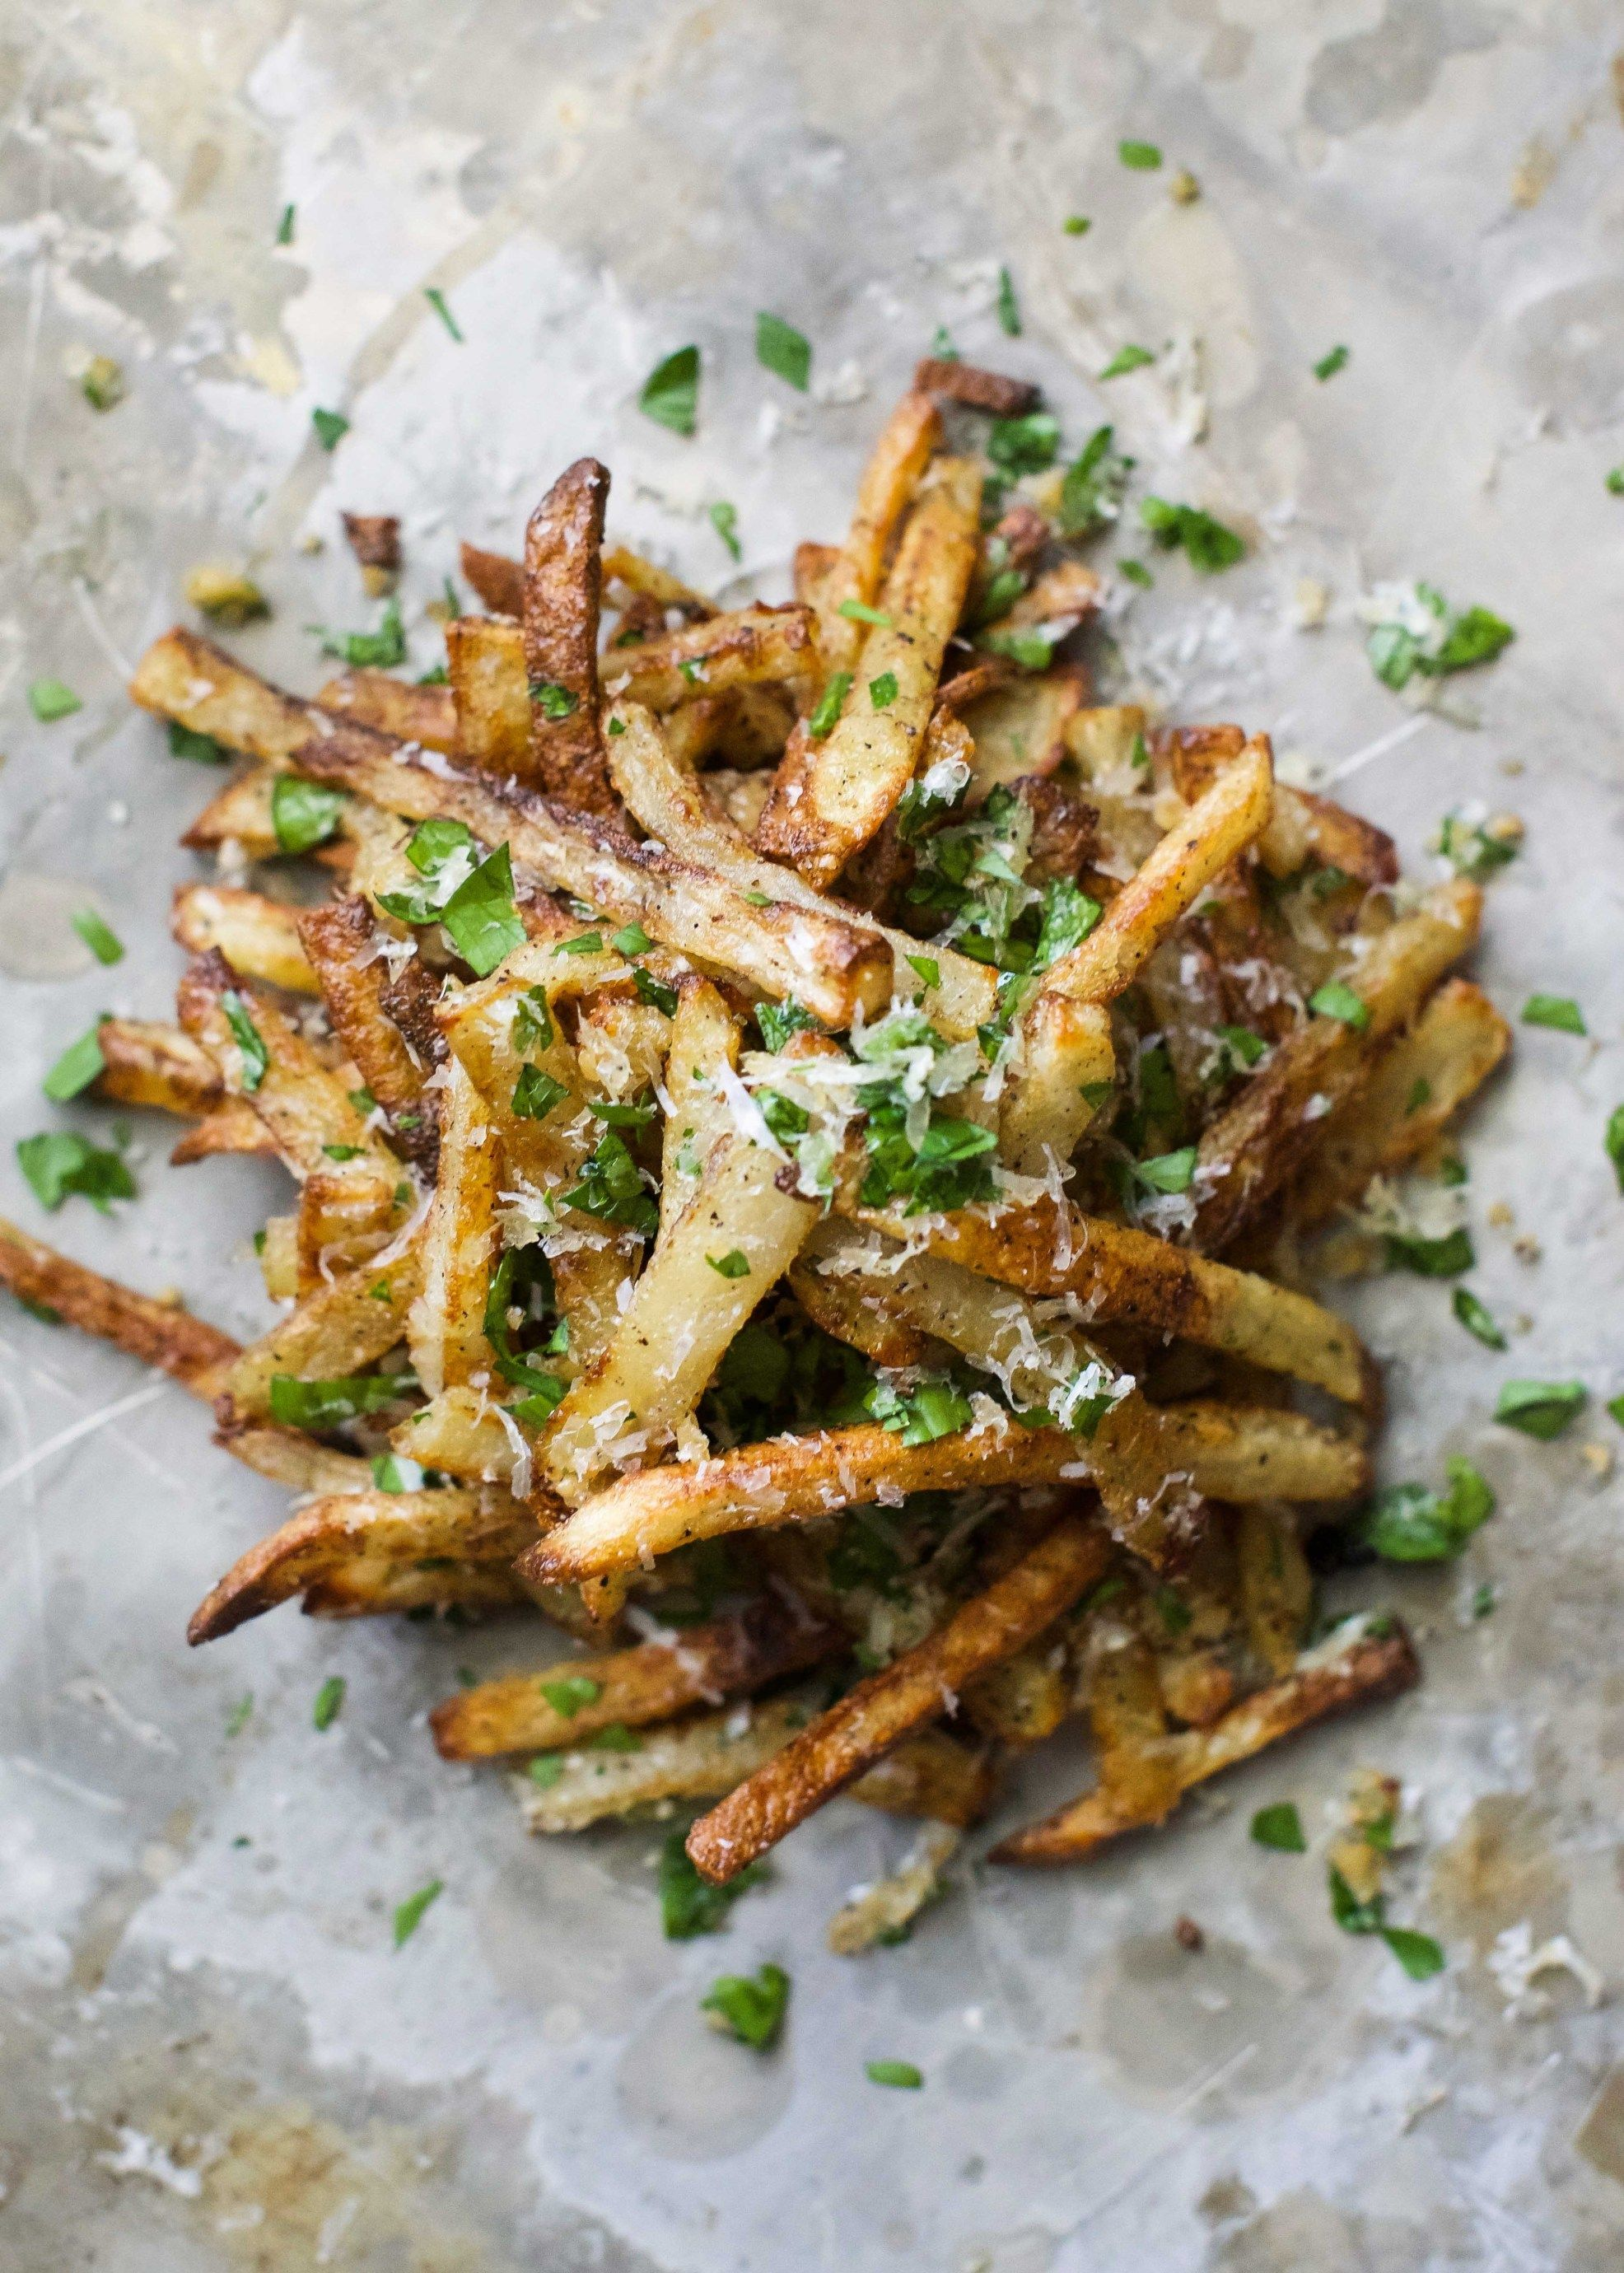 Oven Baked Garlic Parmesan French Fries Recipe Parmesan French Fries Baked Garlic Fries In The Oven